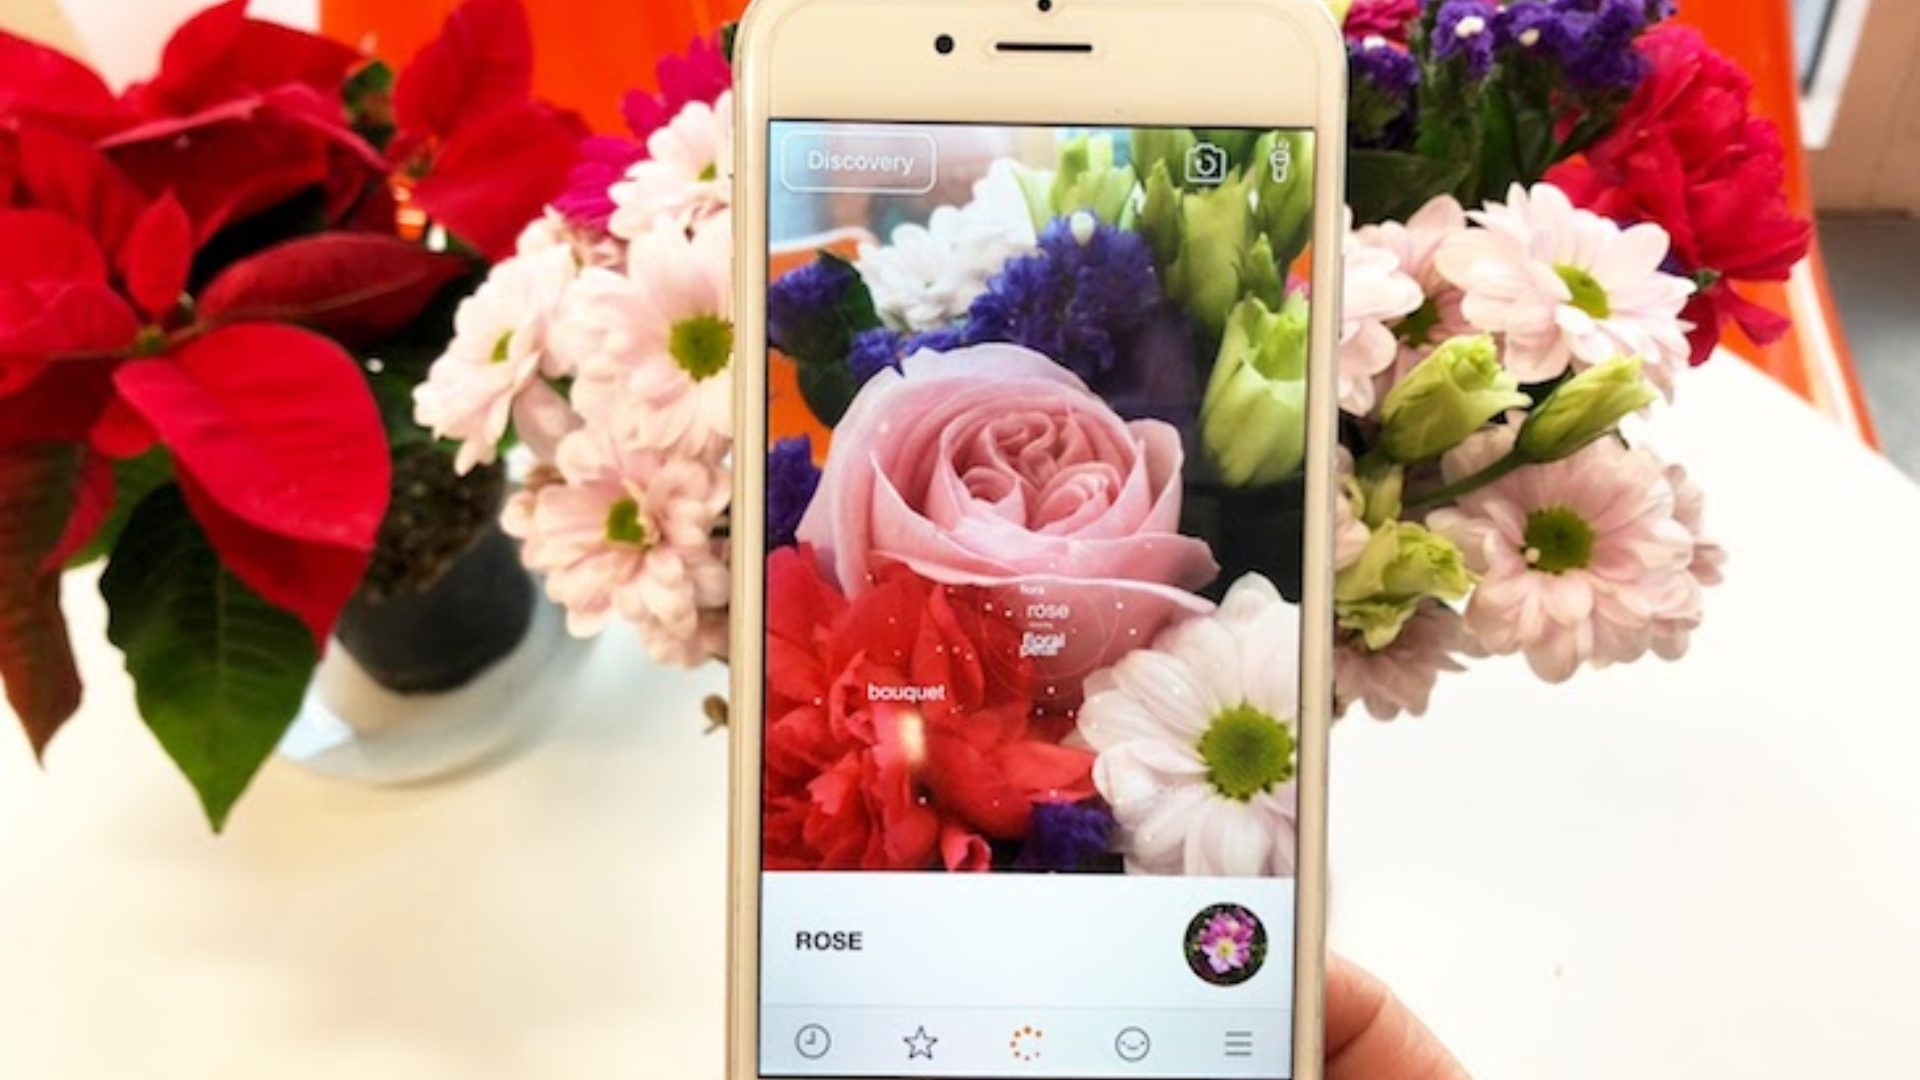 New flower recognition api be your own botanist blog blippar if youve ever struggled to identify a flower or plant weve got the answer were excited to announce our new improved flower recognition technology izmirmasajfo